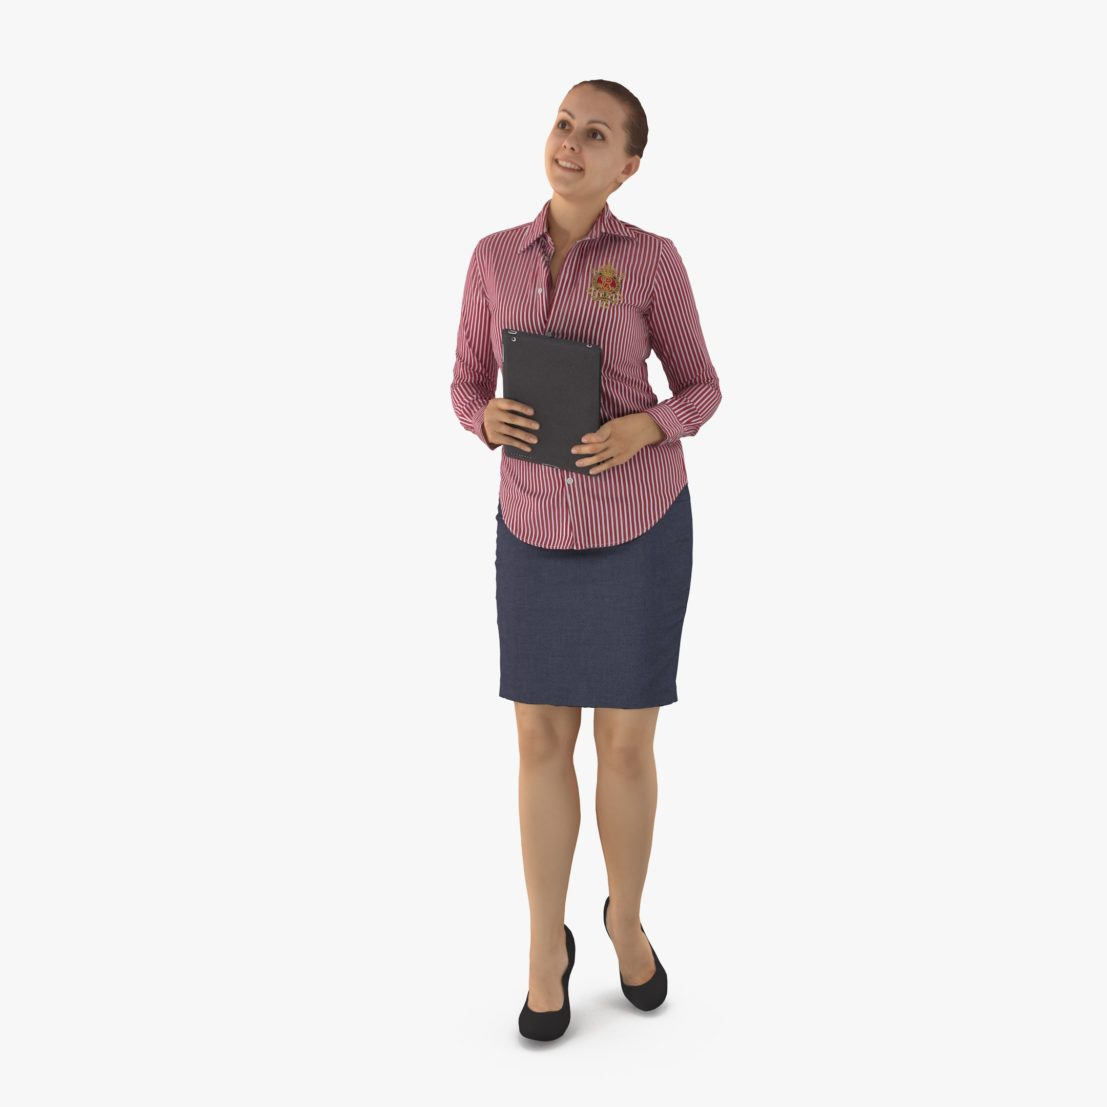 Business Woman Interest 3D Model | 3DTree Scanning Studio